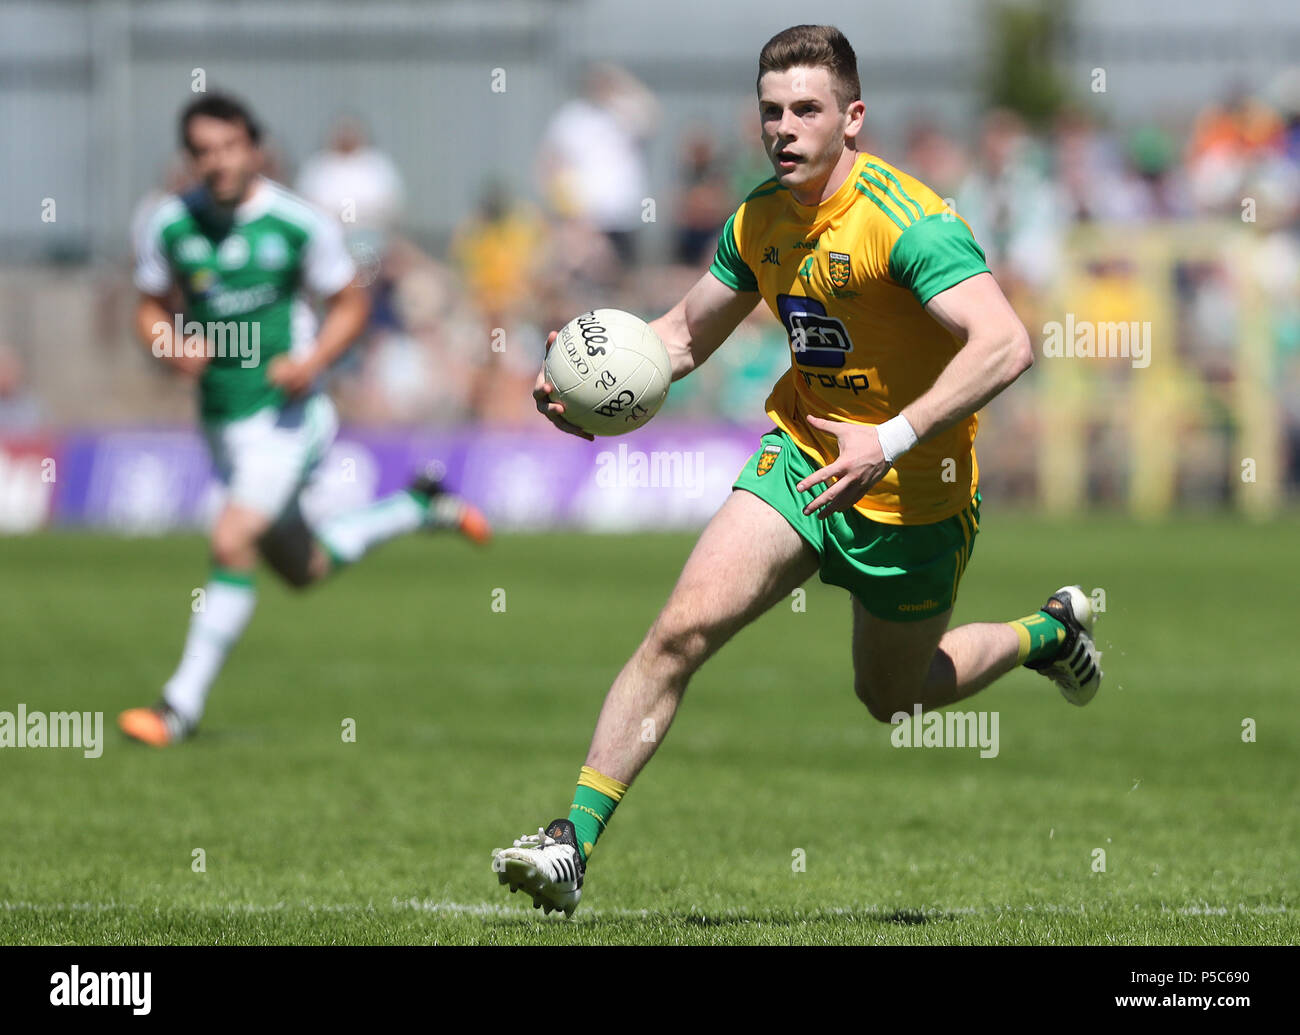 Donegal's Eoghan Ban Gallagher during the GAA Ulster Final in Clones, Co Monaghan, Ireland. - Stock Image